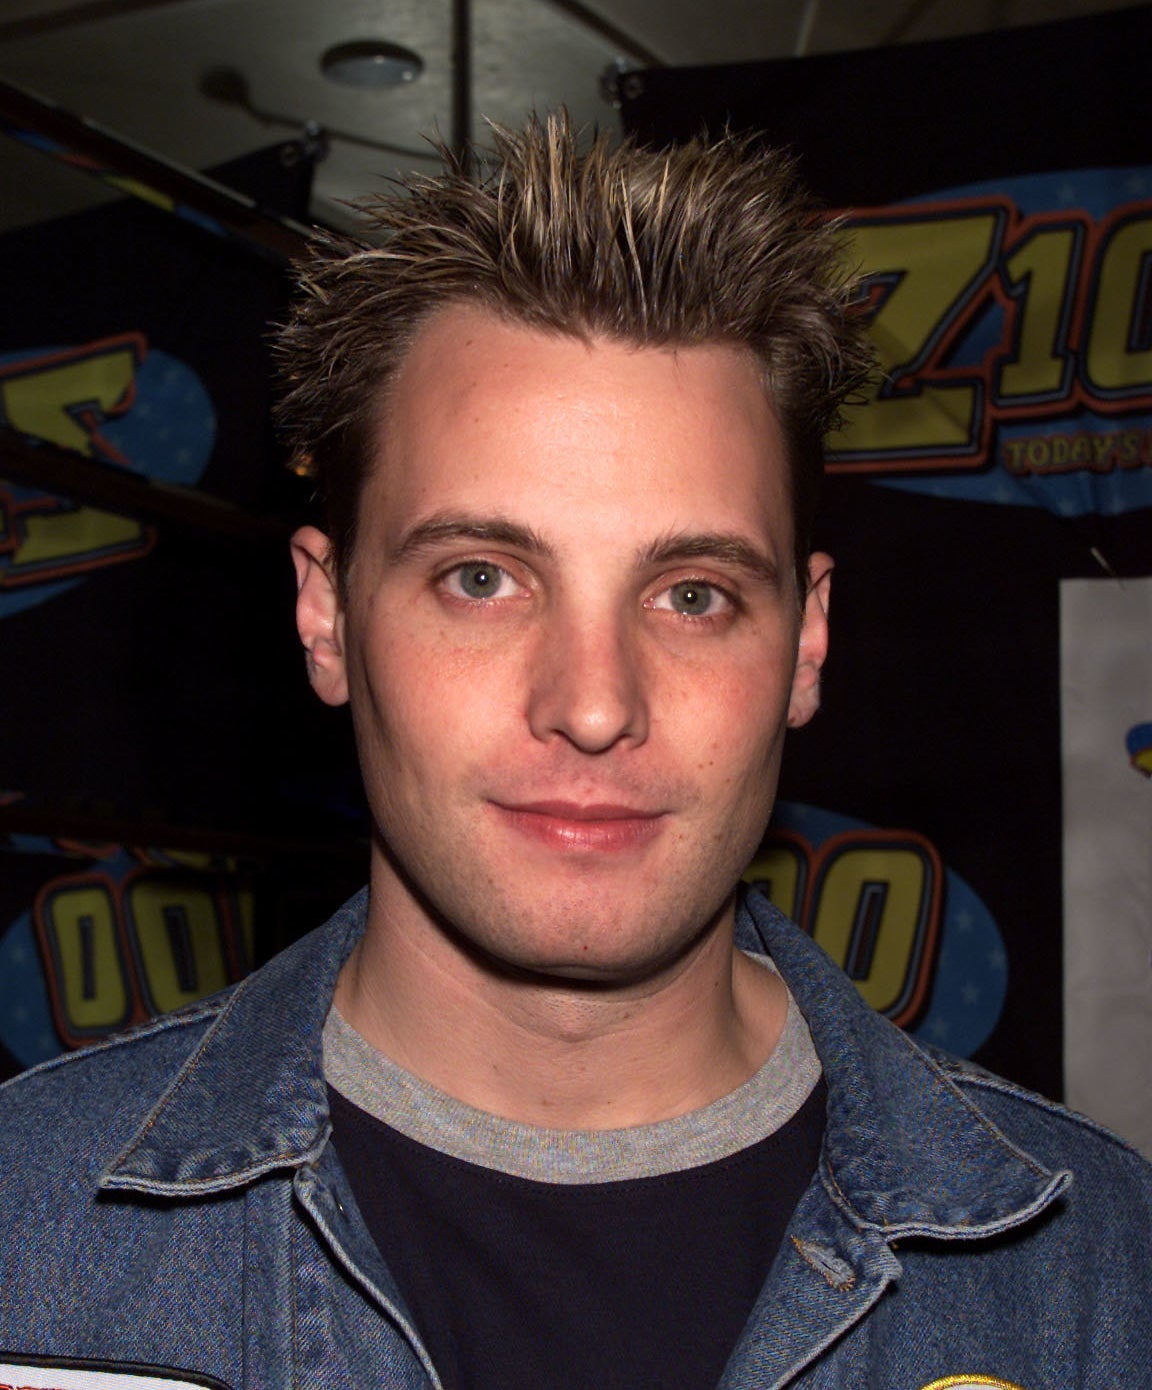 A close-up shot of Rich with frosted tips at Z-100 event in the early 2000s